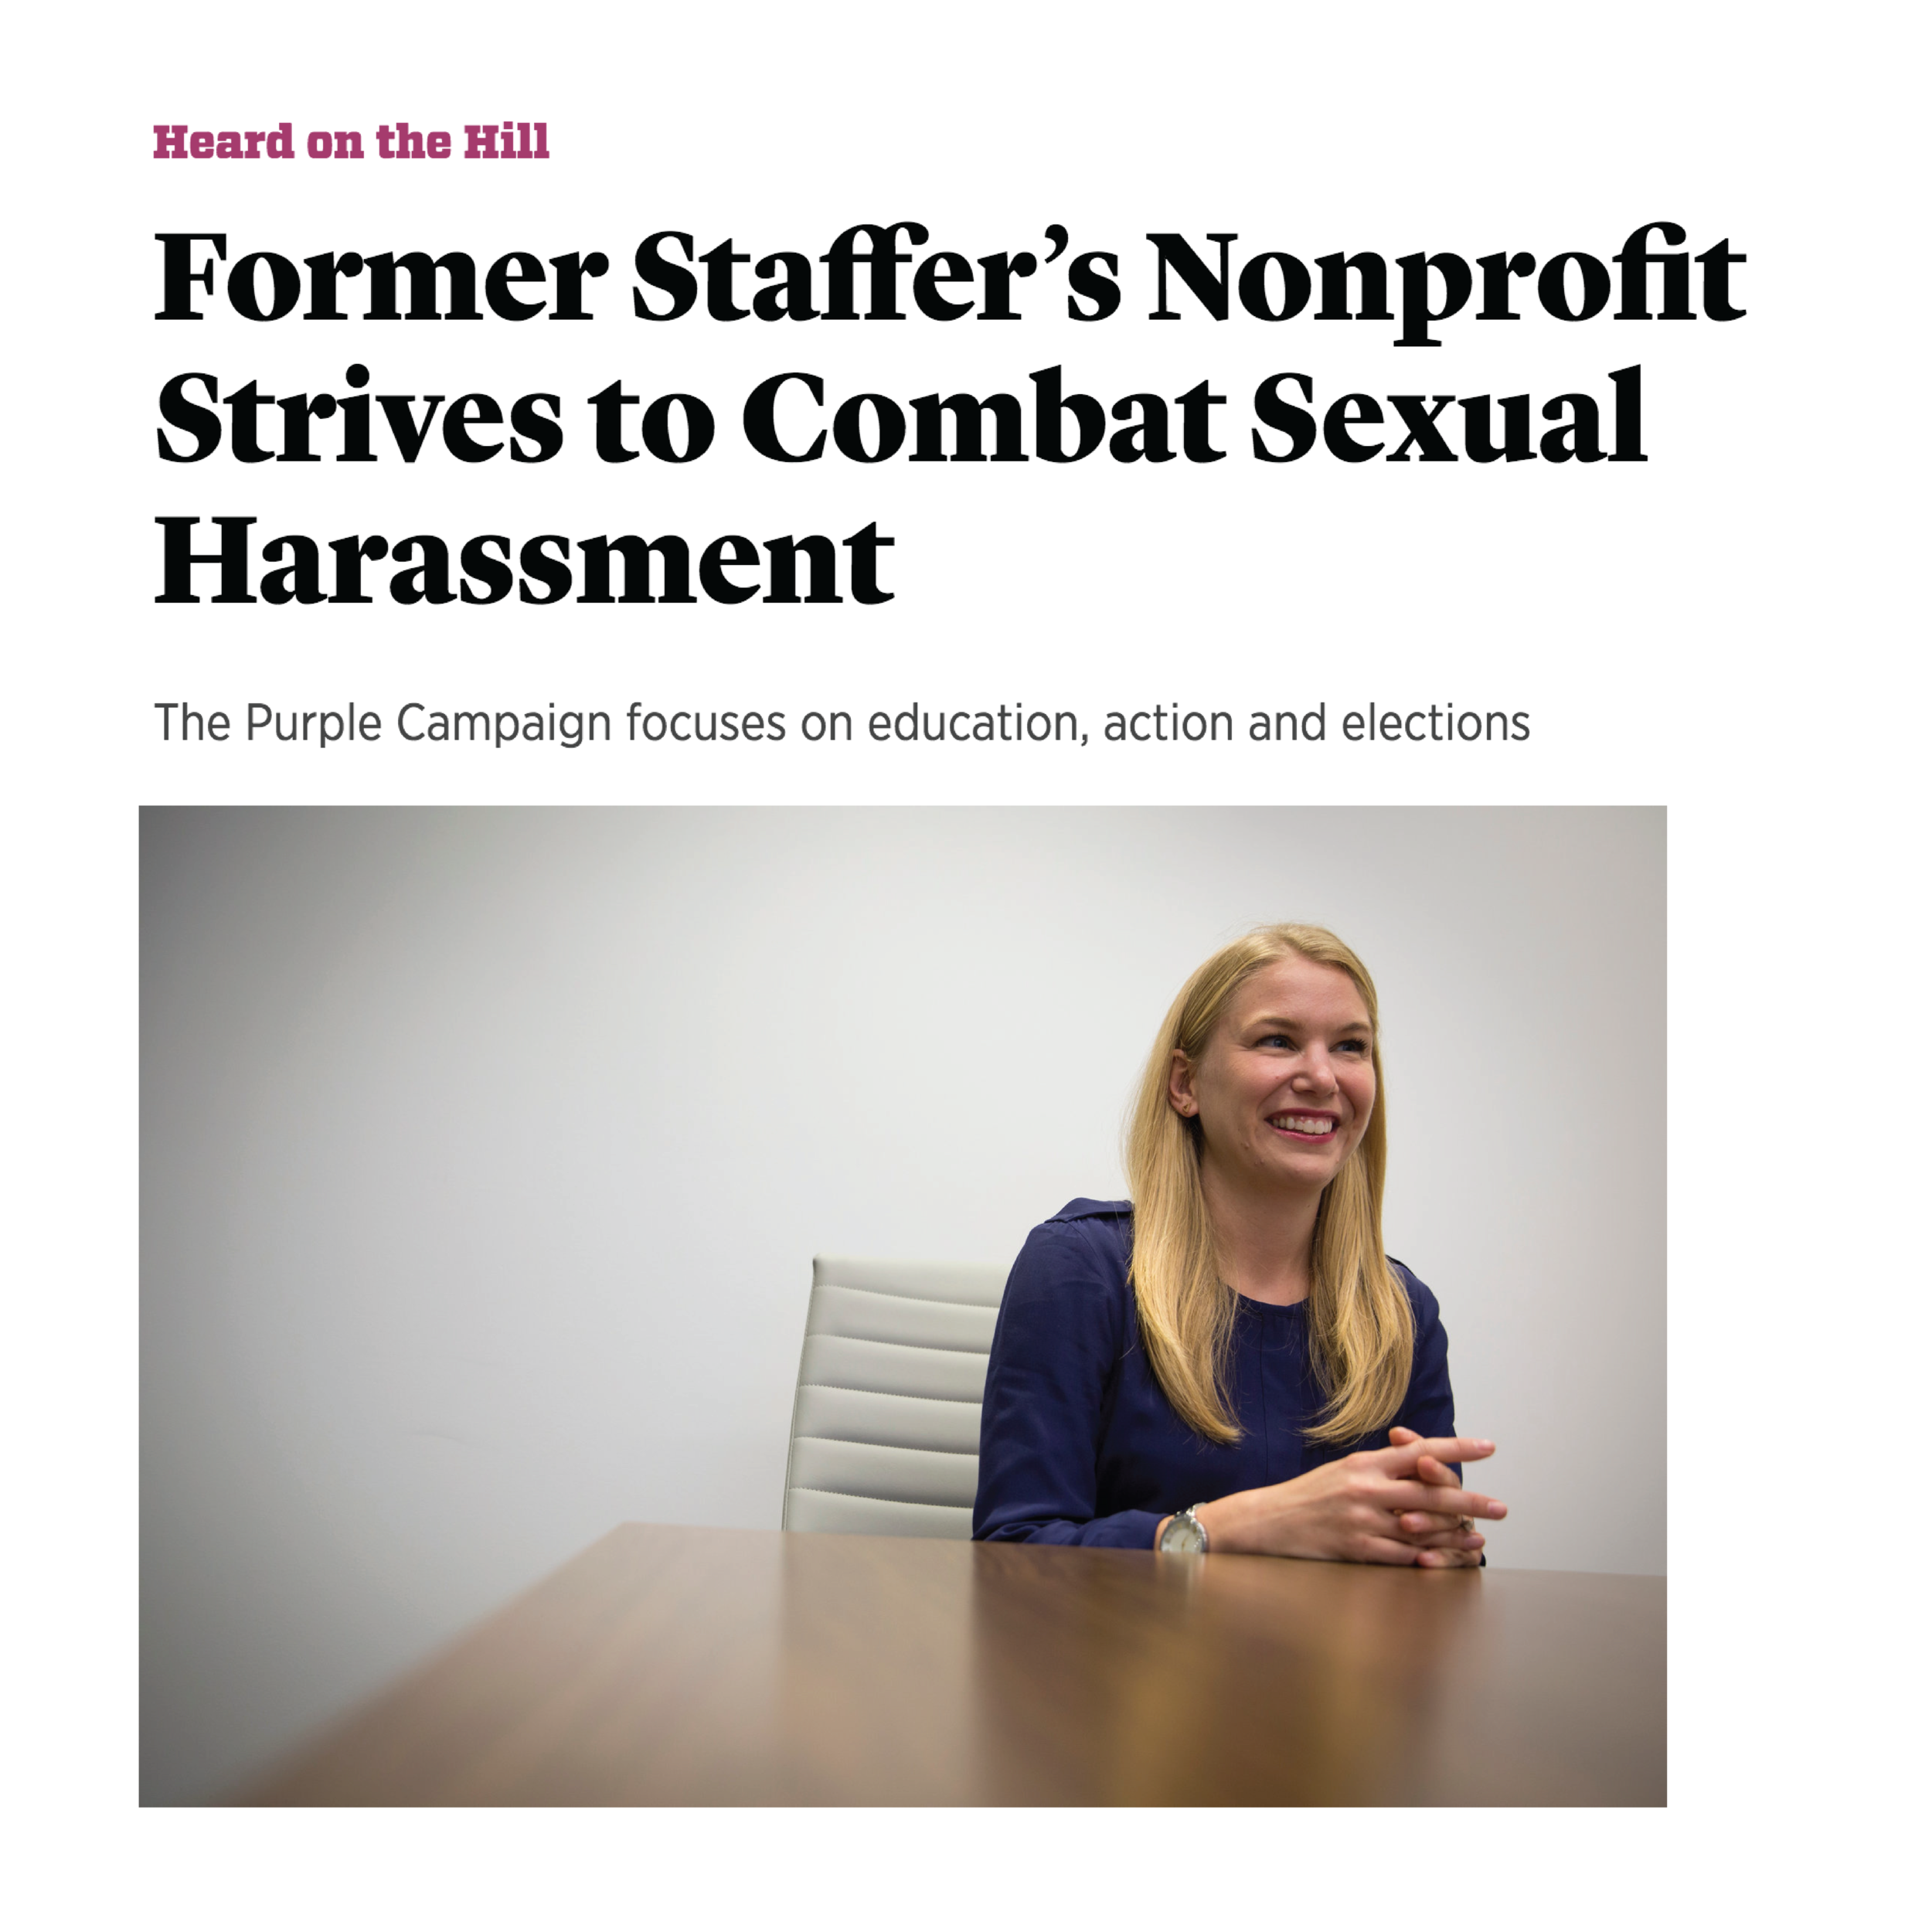 "Former Staffer's Nonprofit Strives to Combat Sexual Harassment - Purple Campaign President Ally Coll sits down with Roll Call to discuss how the Purple Campaign is working to end workplace sexual harassment through action, education and elections.I just felt strongly that this moment was an opportunity for real, substantial policy change,"" Coll said of the #MeToo movement. ""I was concerned that it may become just a moment of awareness-raising and wanted to ensure that it turned into a moment where we saw workplace policy change and also public policy change come out of it."" Read full article here."